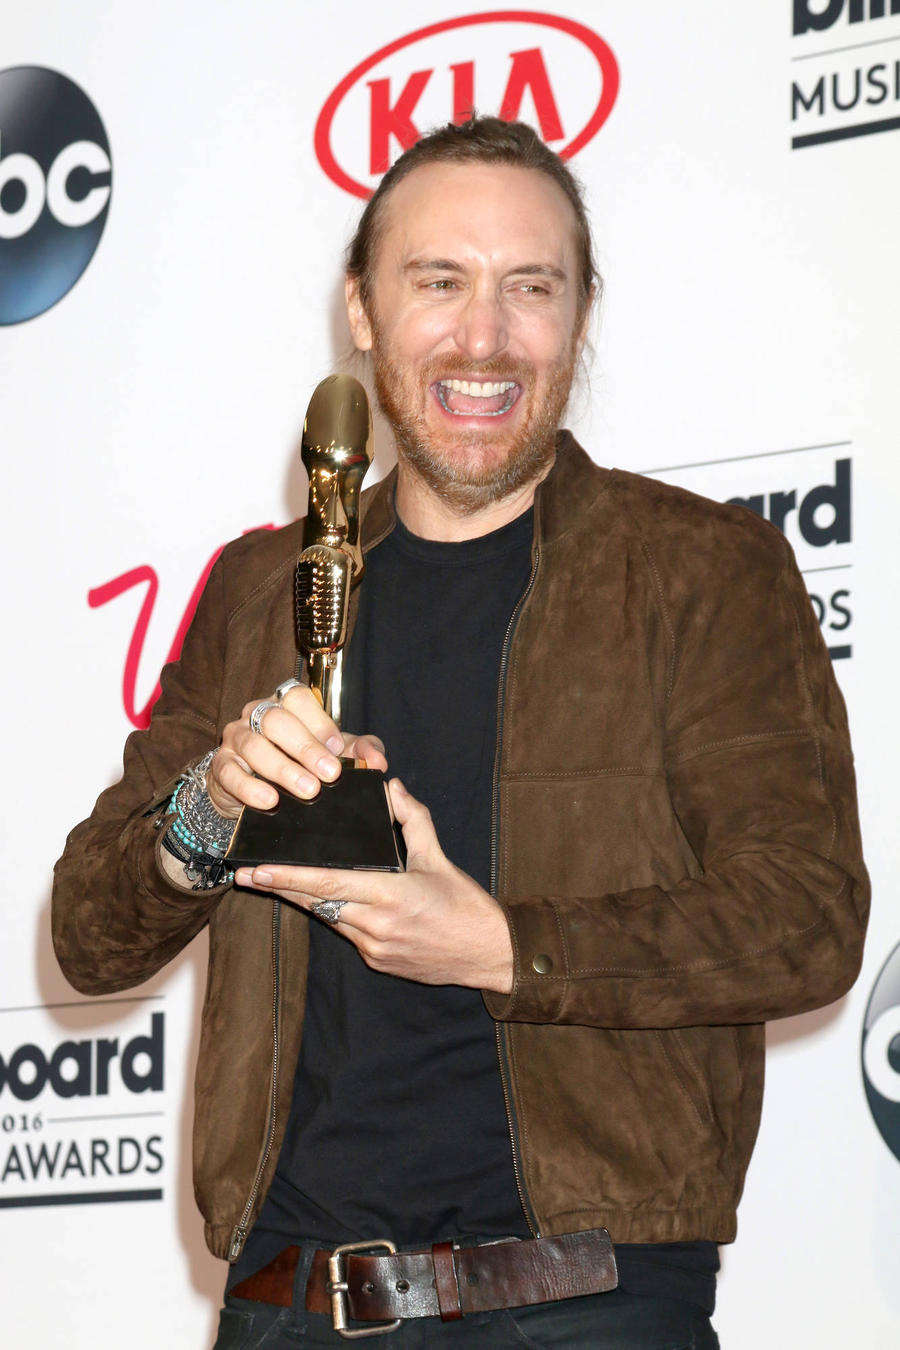 David Guetta 'Would Love To Play' Glastonbury